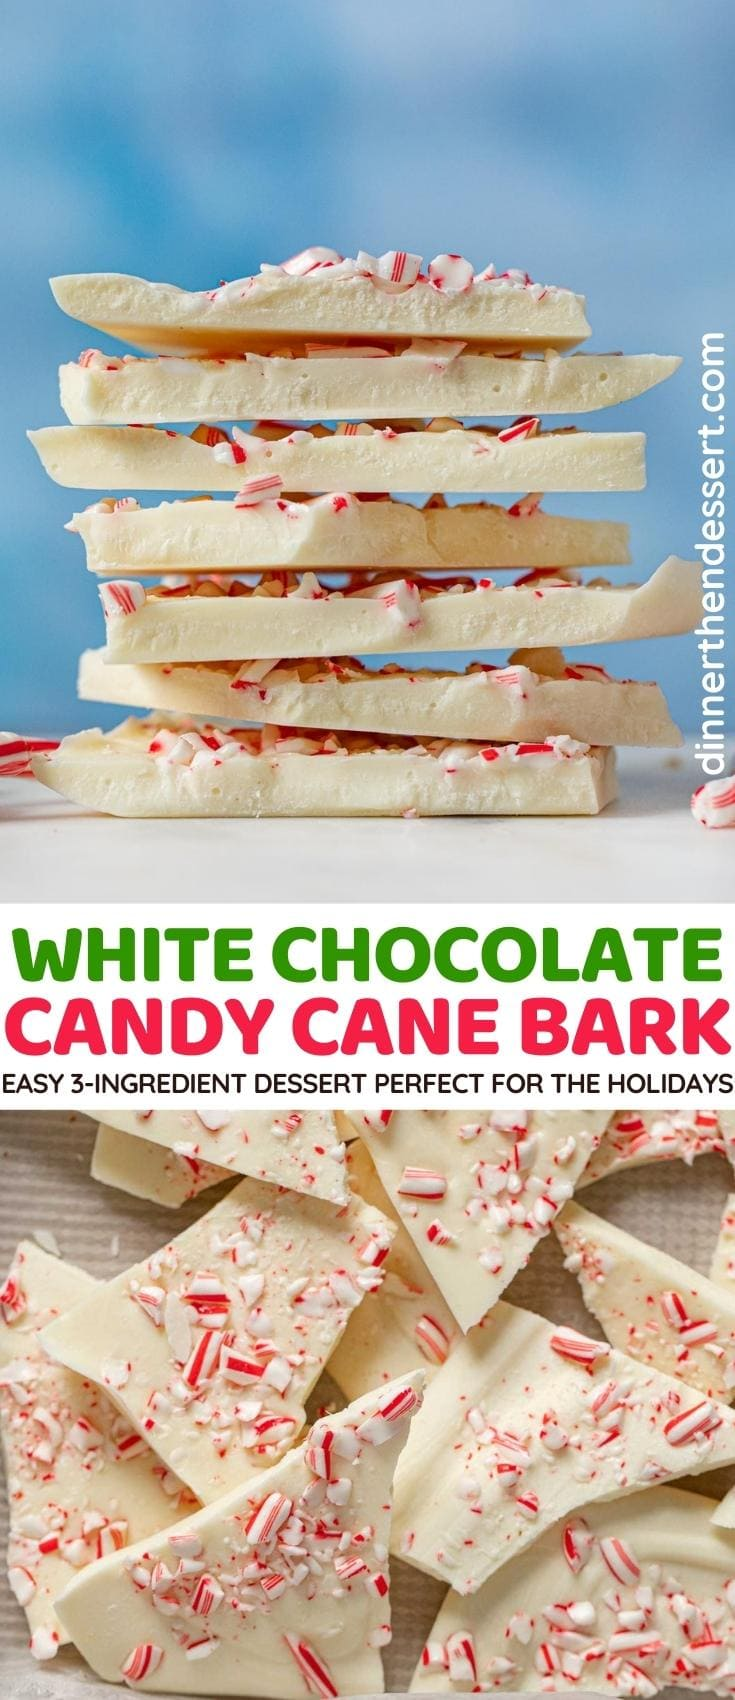 White Chocolate Candy Cane Bark collage